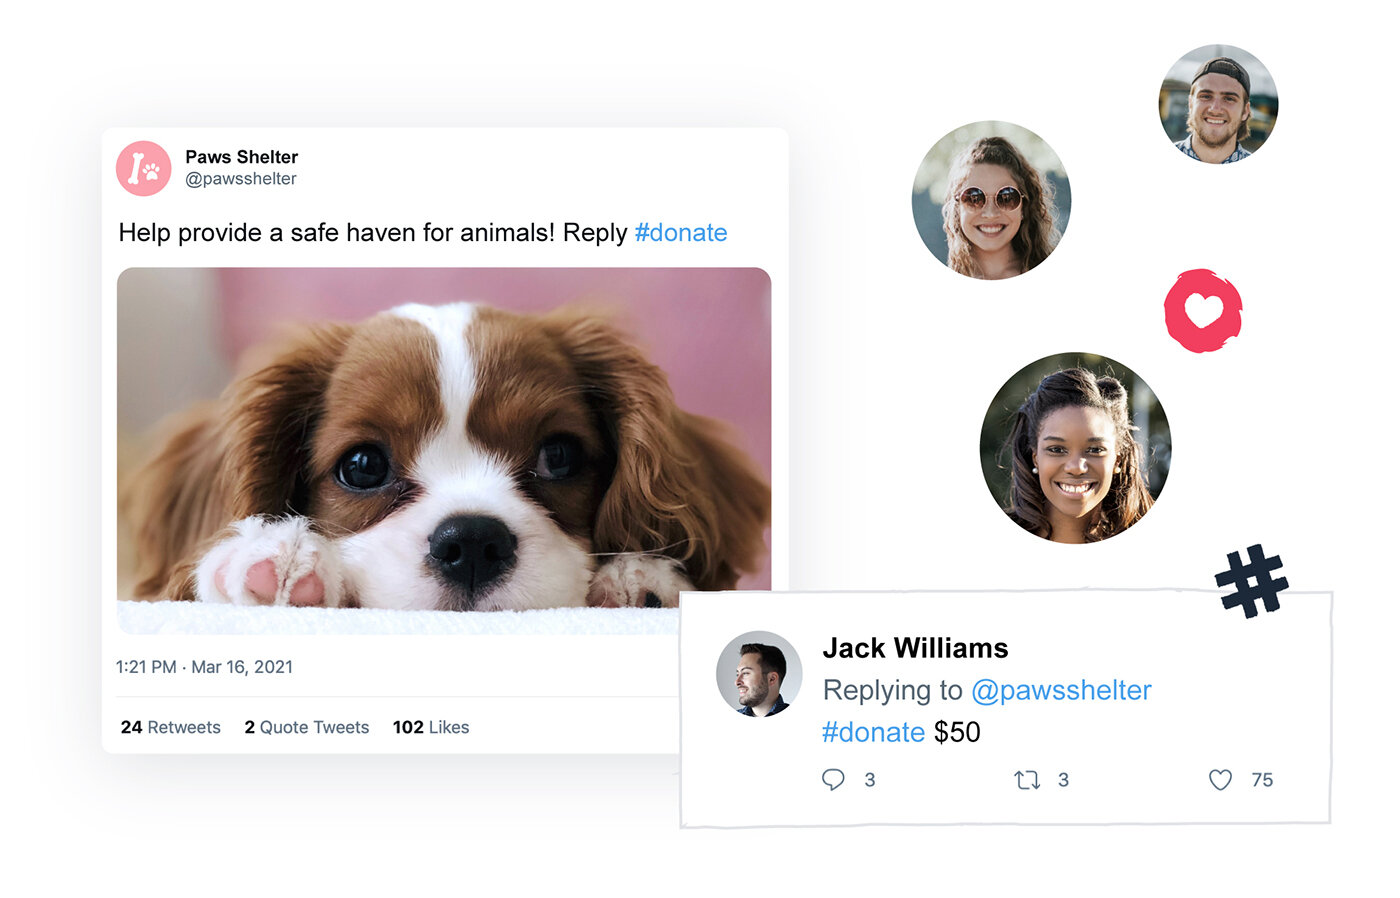 Engage & network - Reach supporters, celebrities and partners on social media. Hashtags are a fun way for them to fundraise for your mission and make an impact.